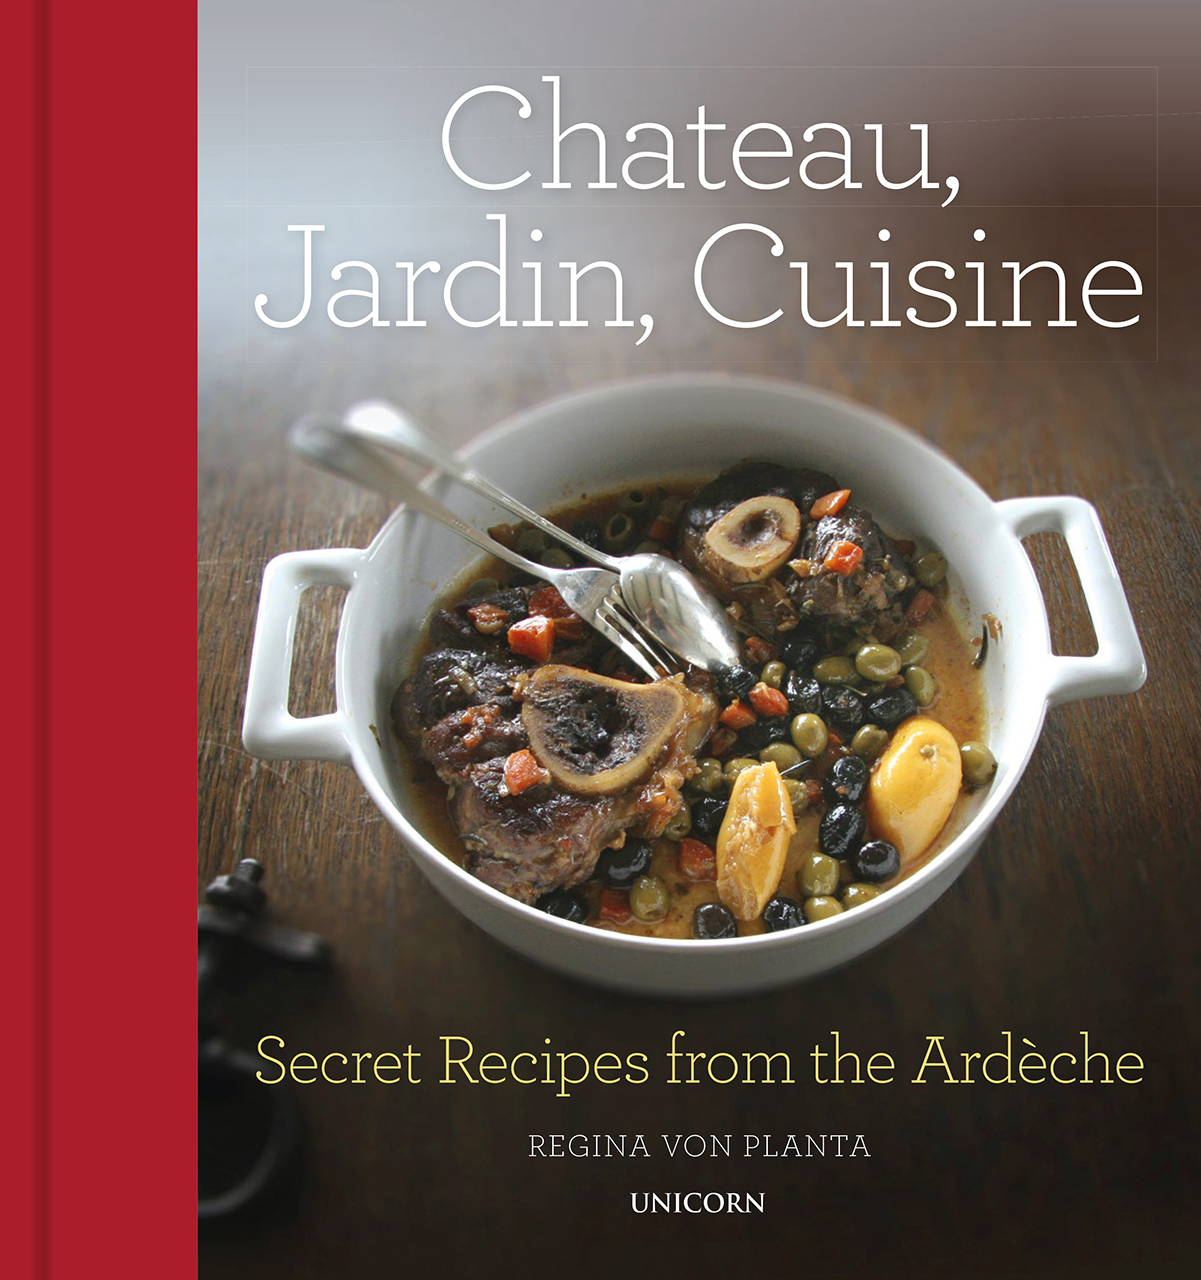 Chateau, Jardin, Cuisine: Secret Recipes from the Ardèche